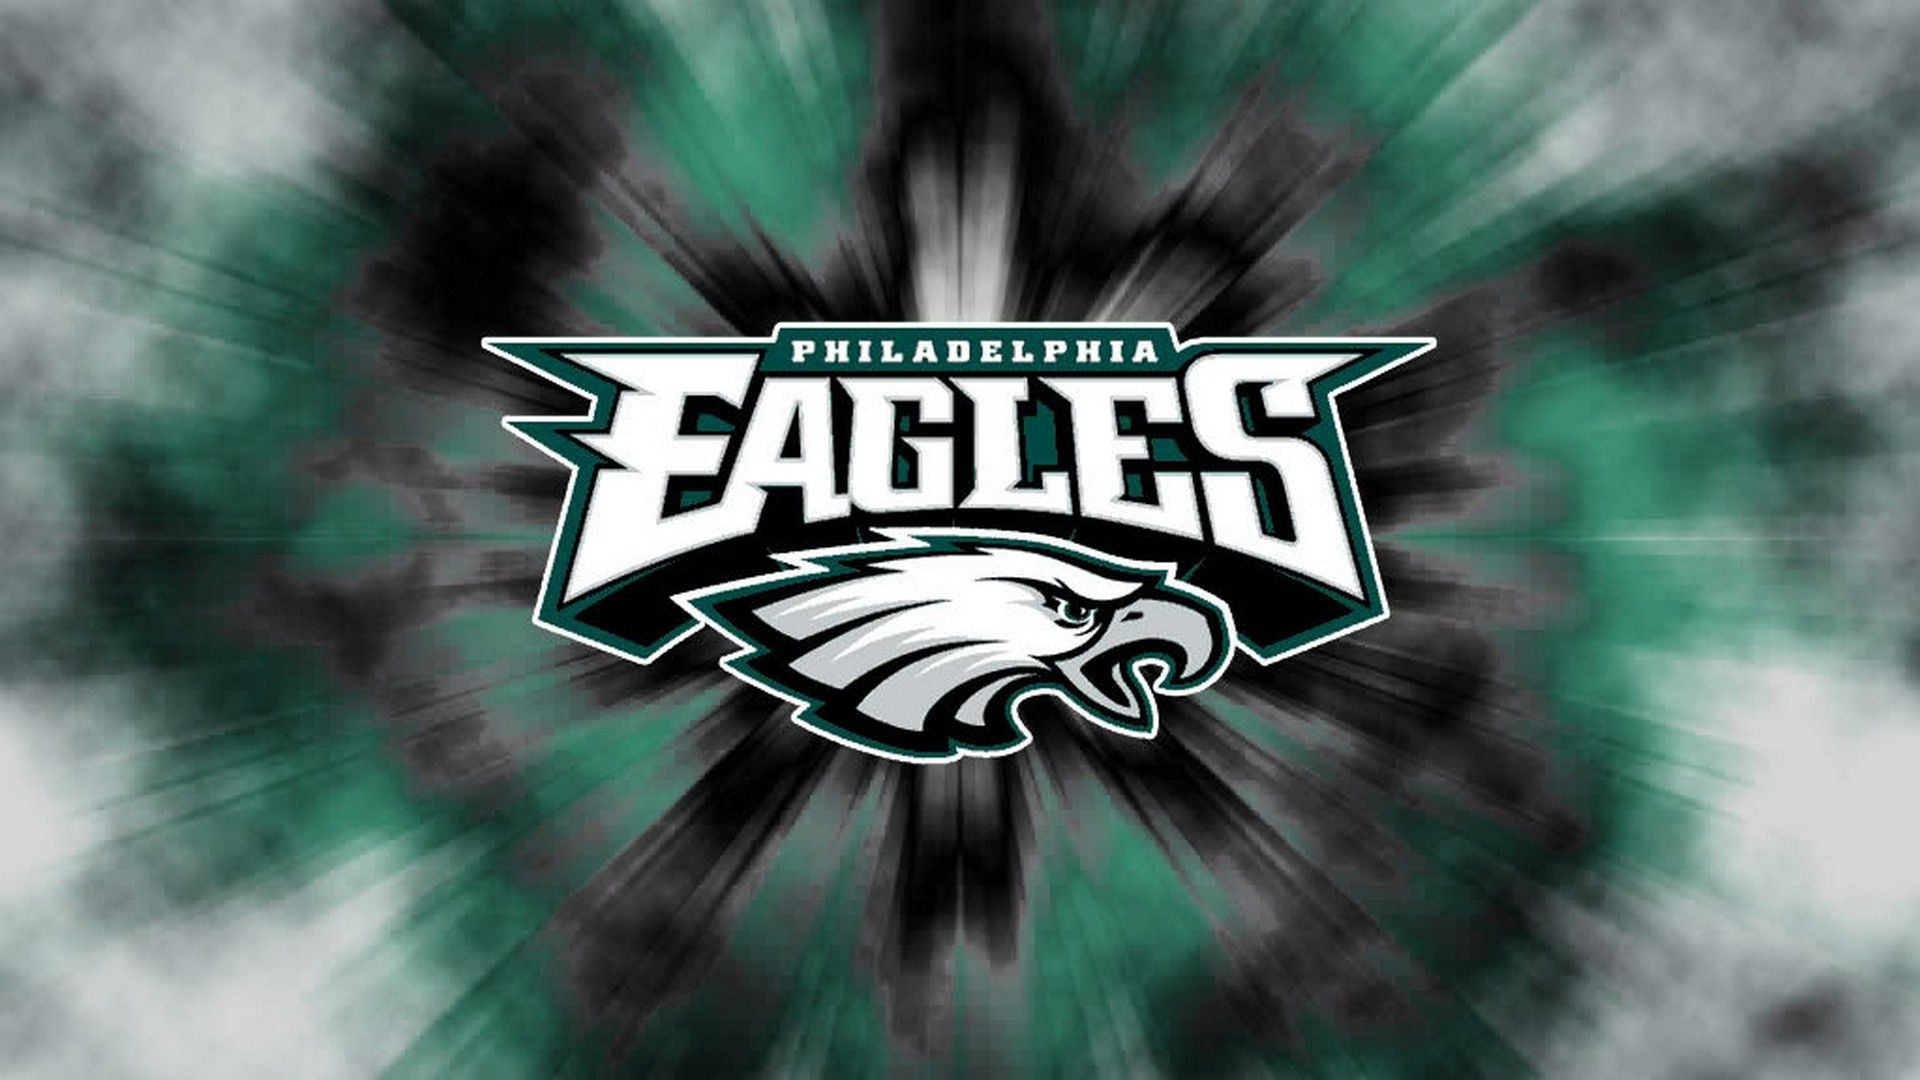 Backgrounds Phila Eagles HD Philadelphia eagles